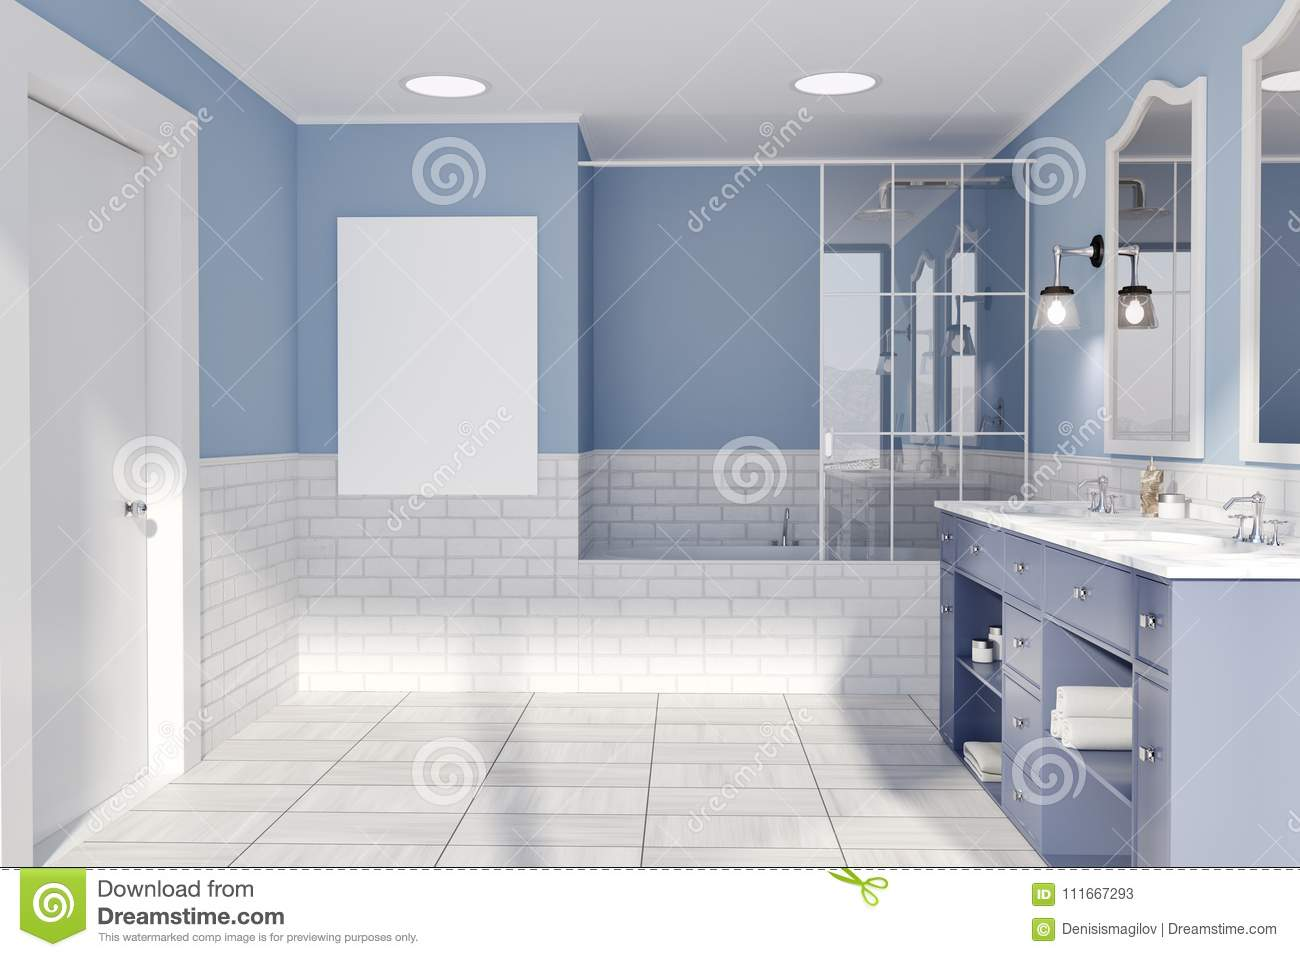 Blue And White Brick Bathroom Interior Idea A Tiled Wooden Floor A Double Sink With Original Mirrors And A Bathtub A Front View A Poster